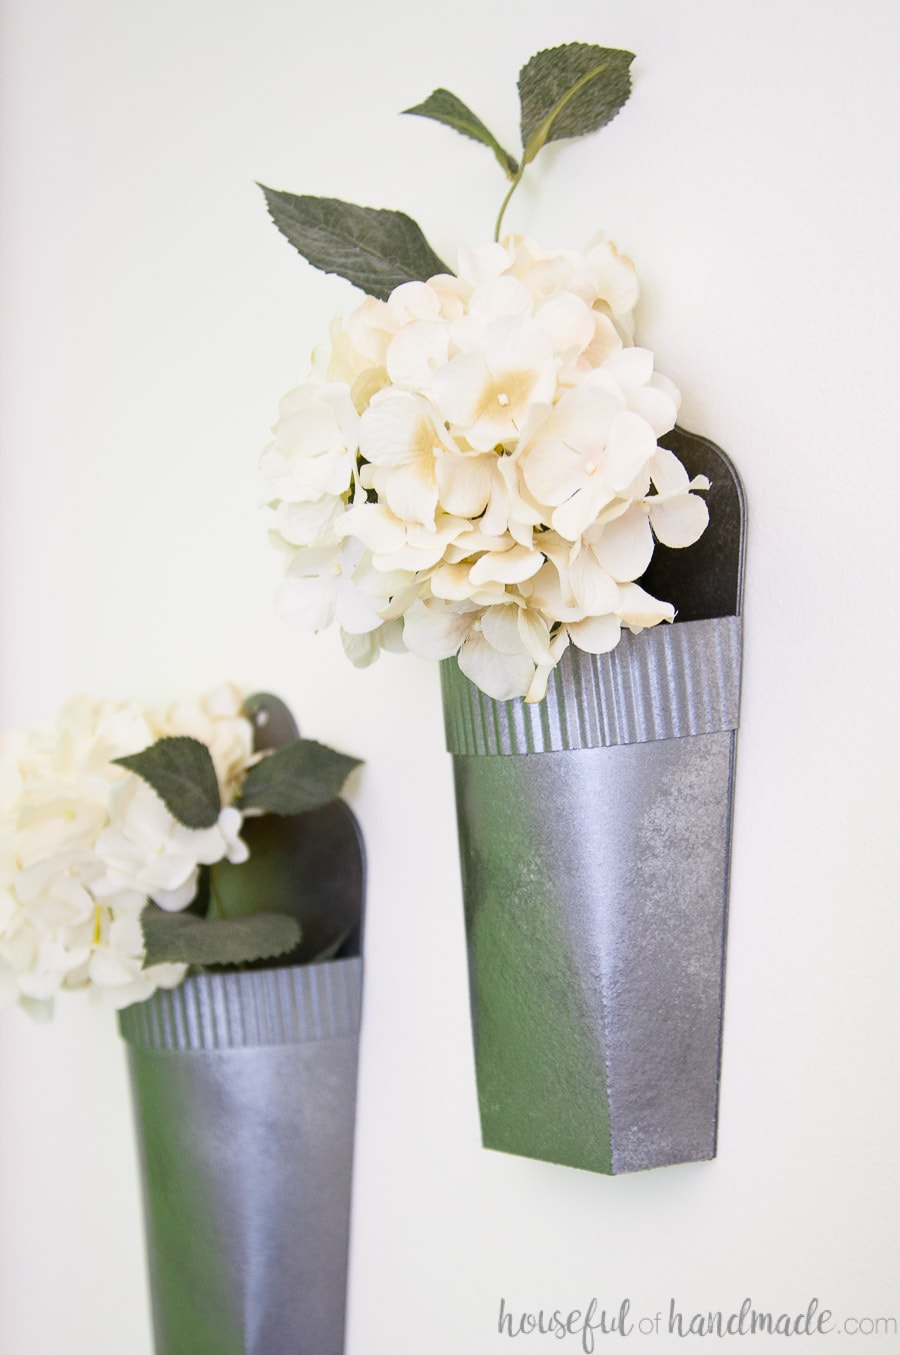 Close up view of the hammered metal spray paint on the wall vases.